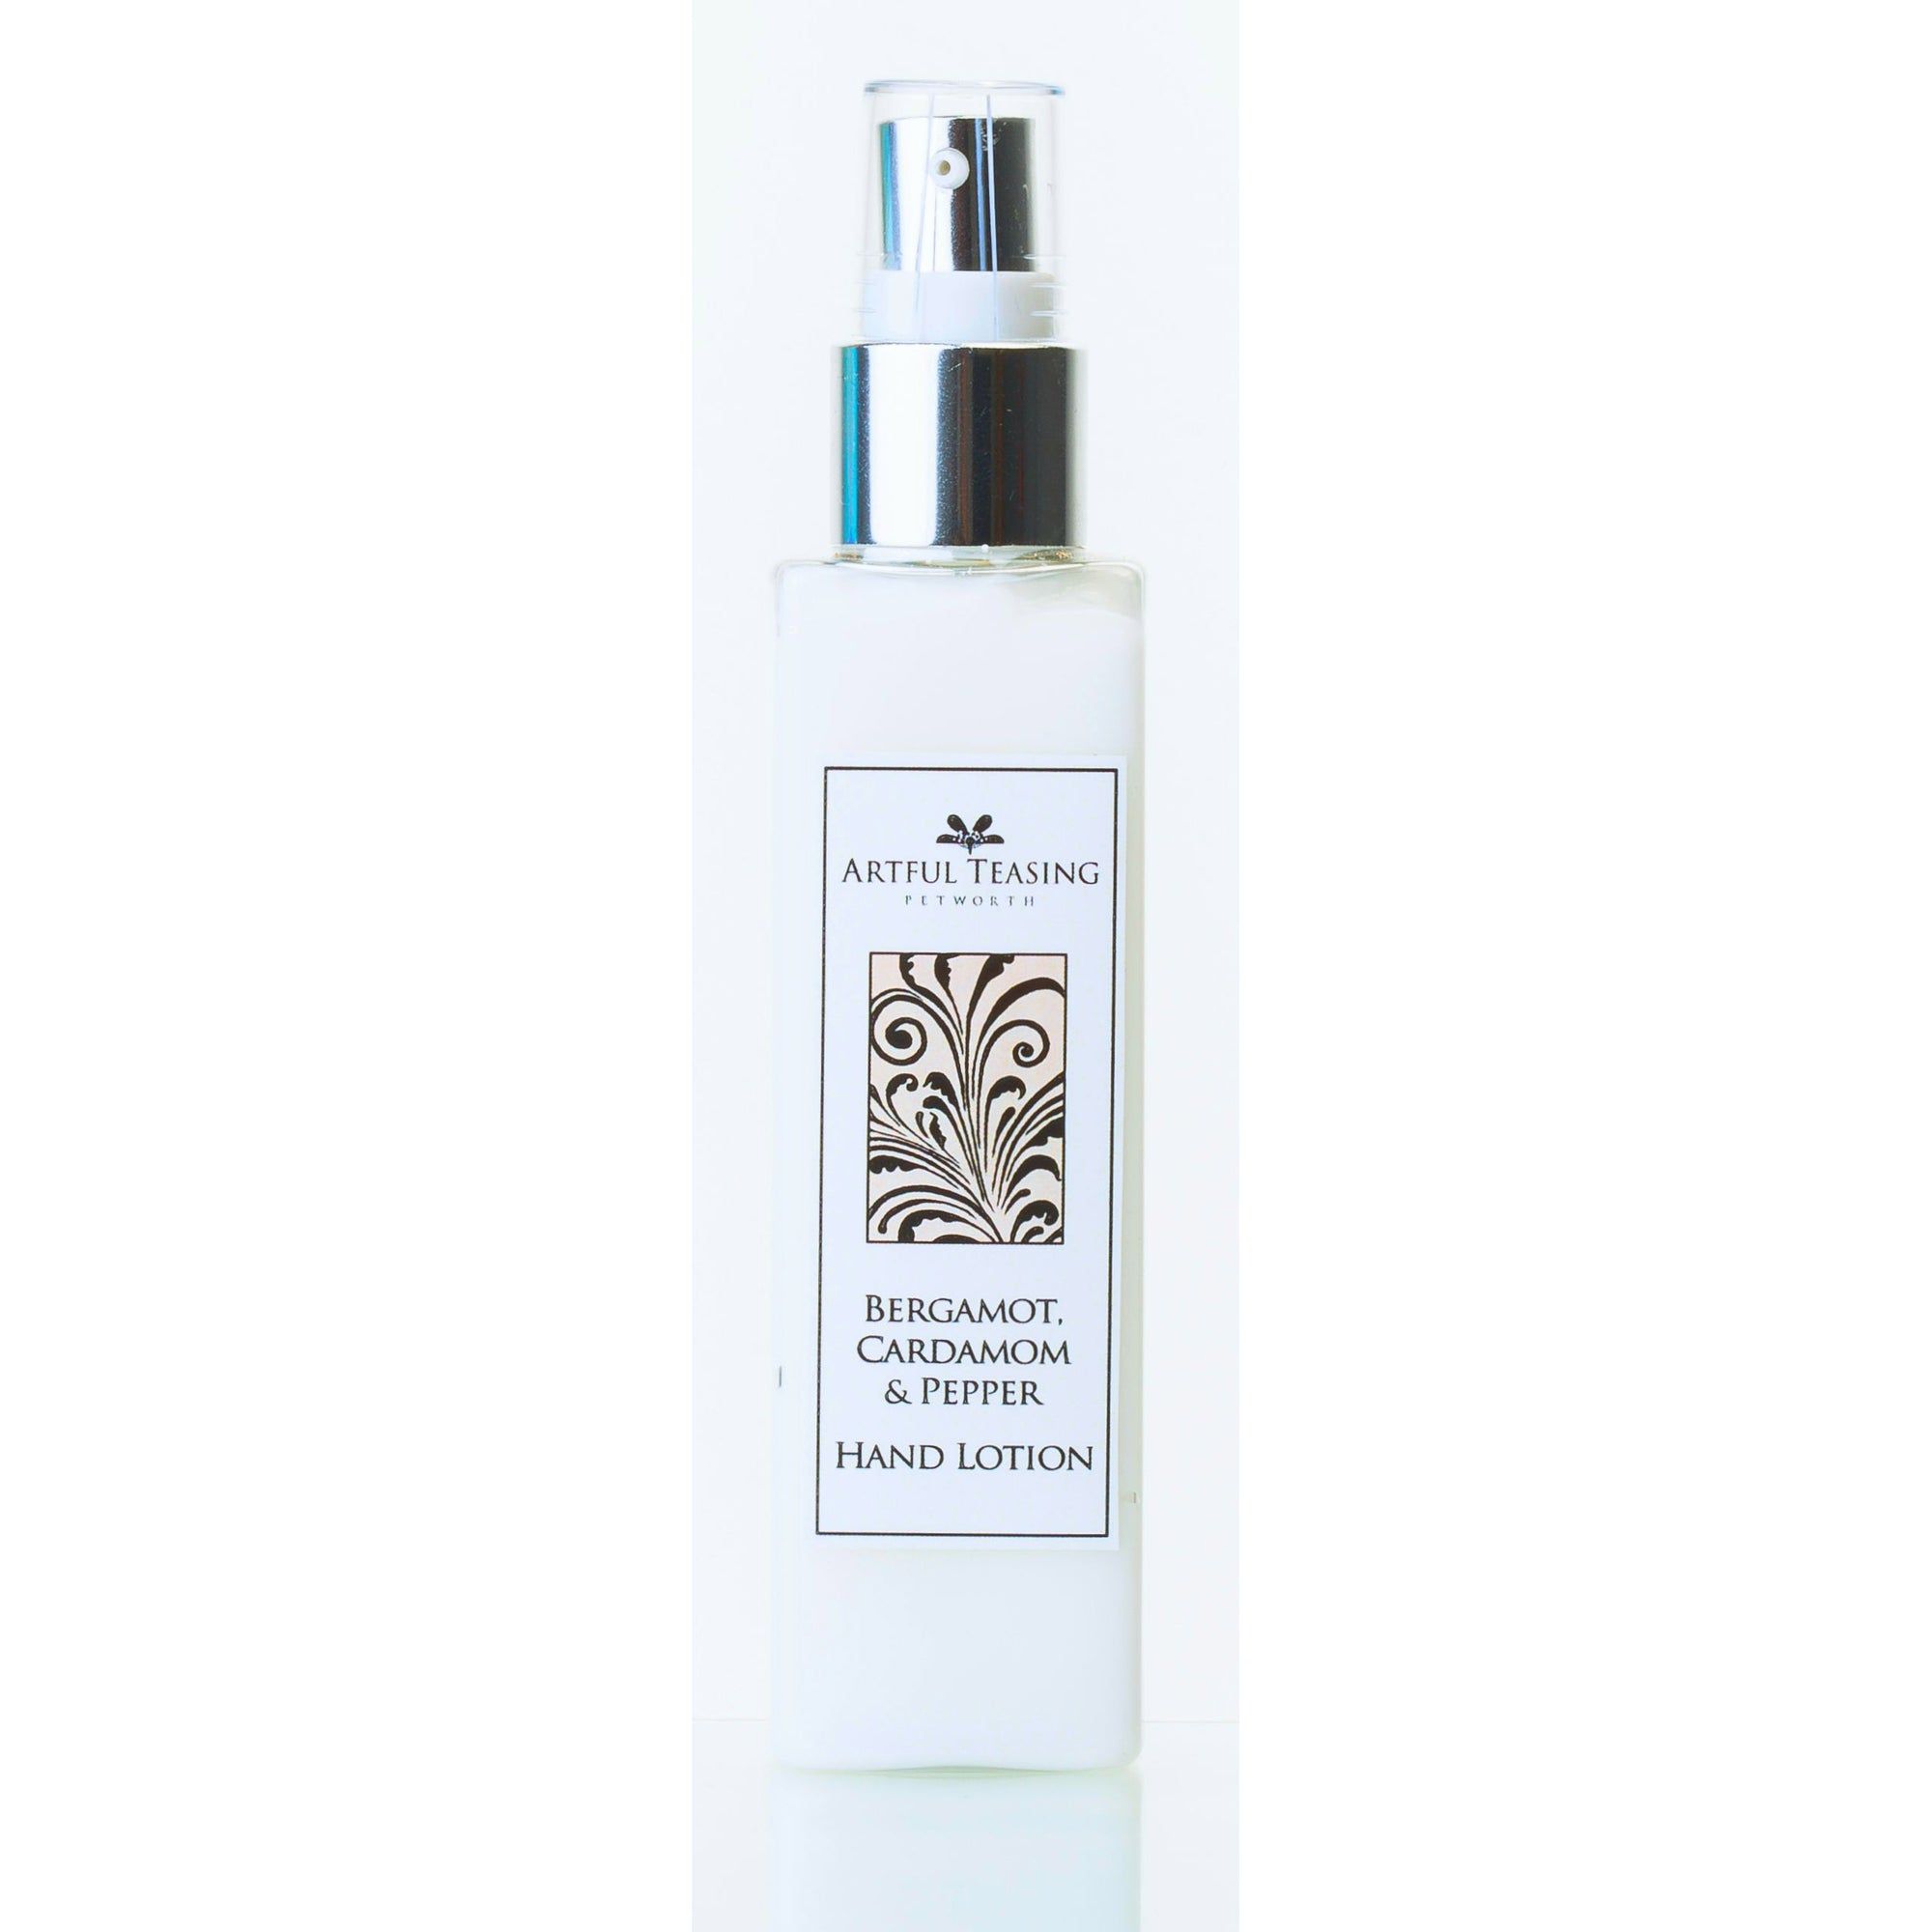 Bergamot, Cardamom & Pepper Hand Lotion 100ml